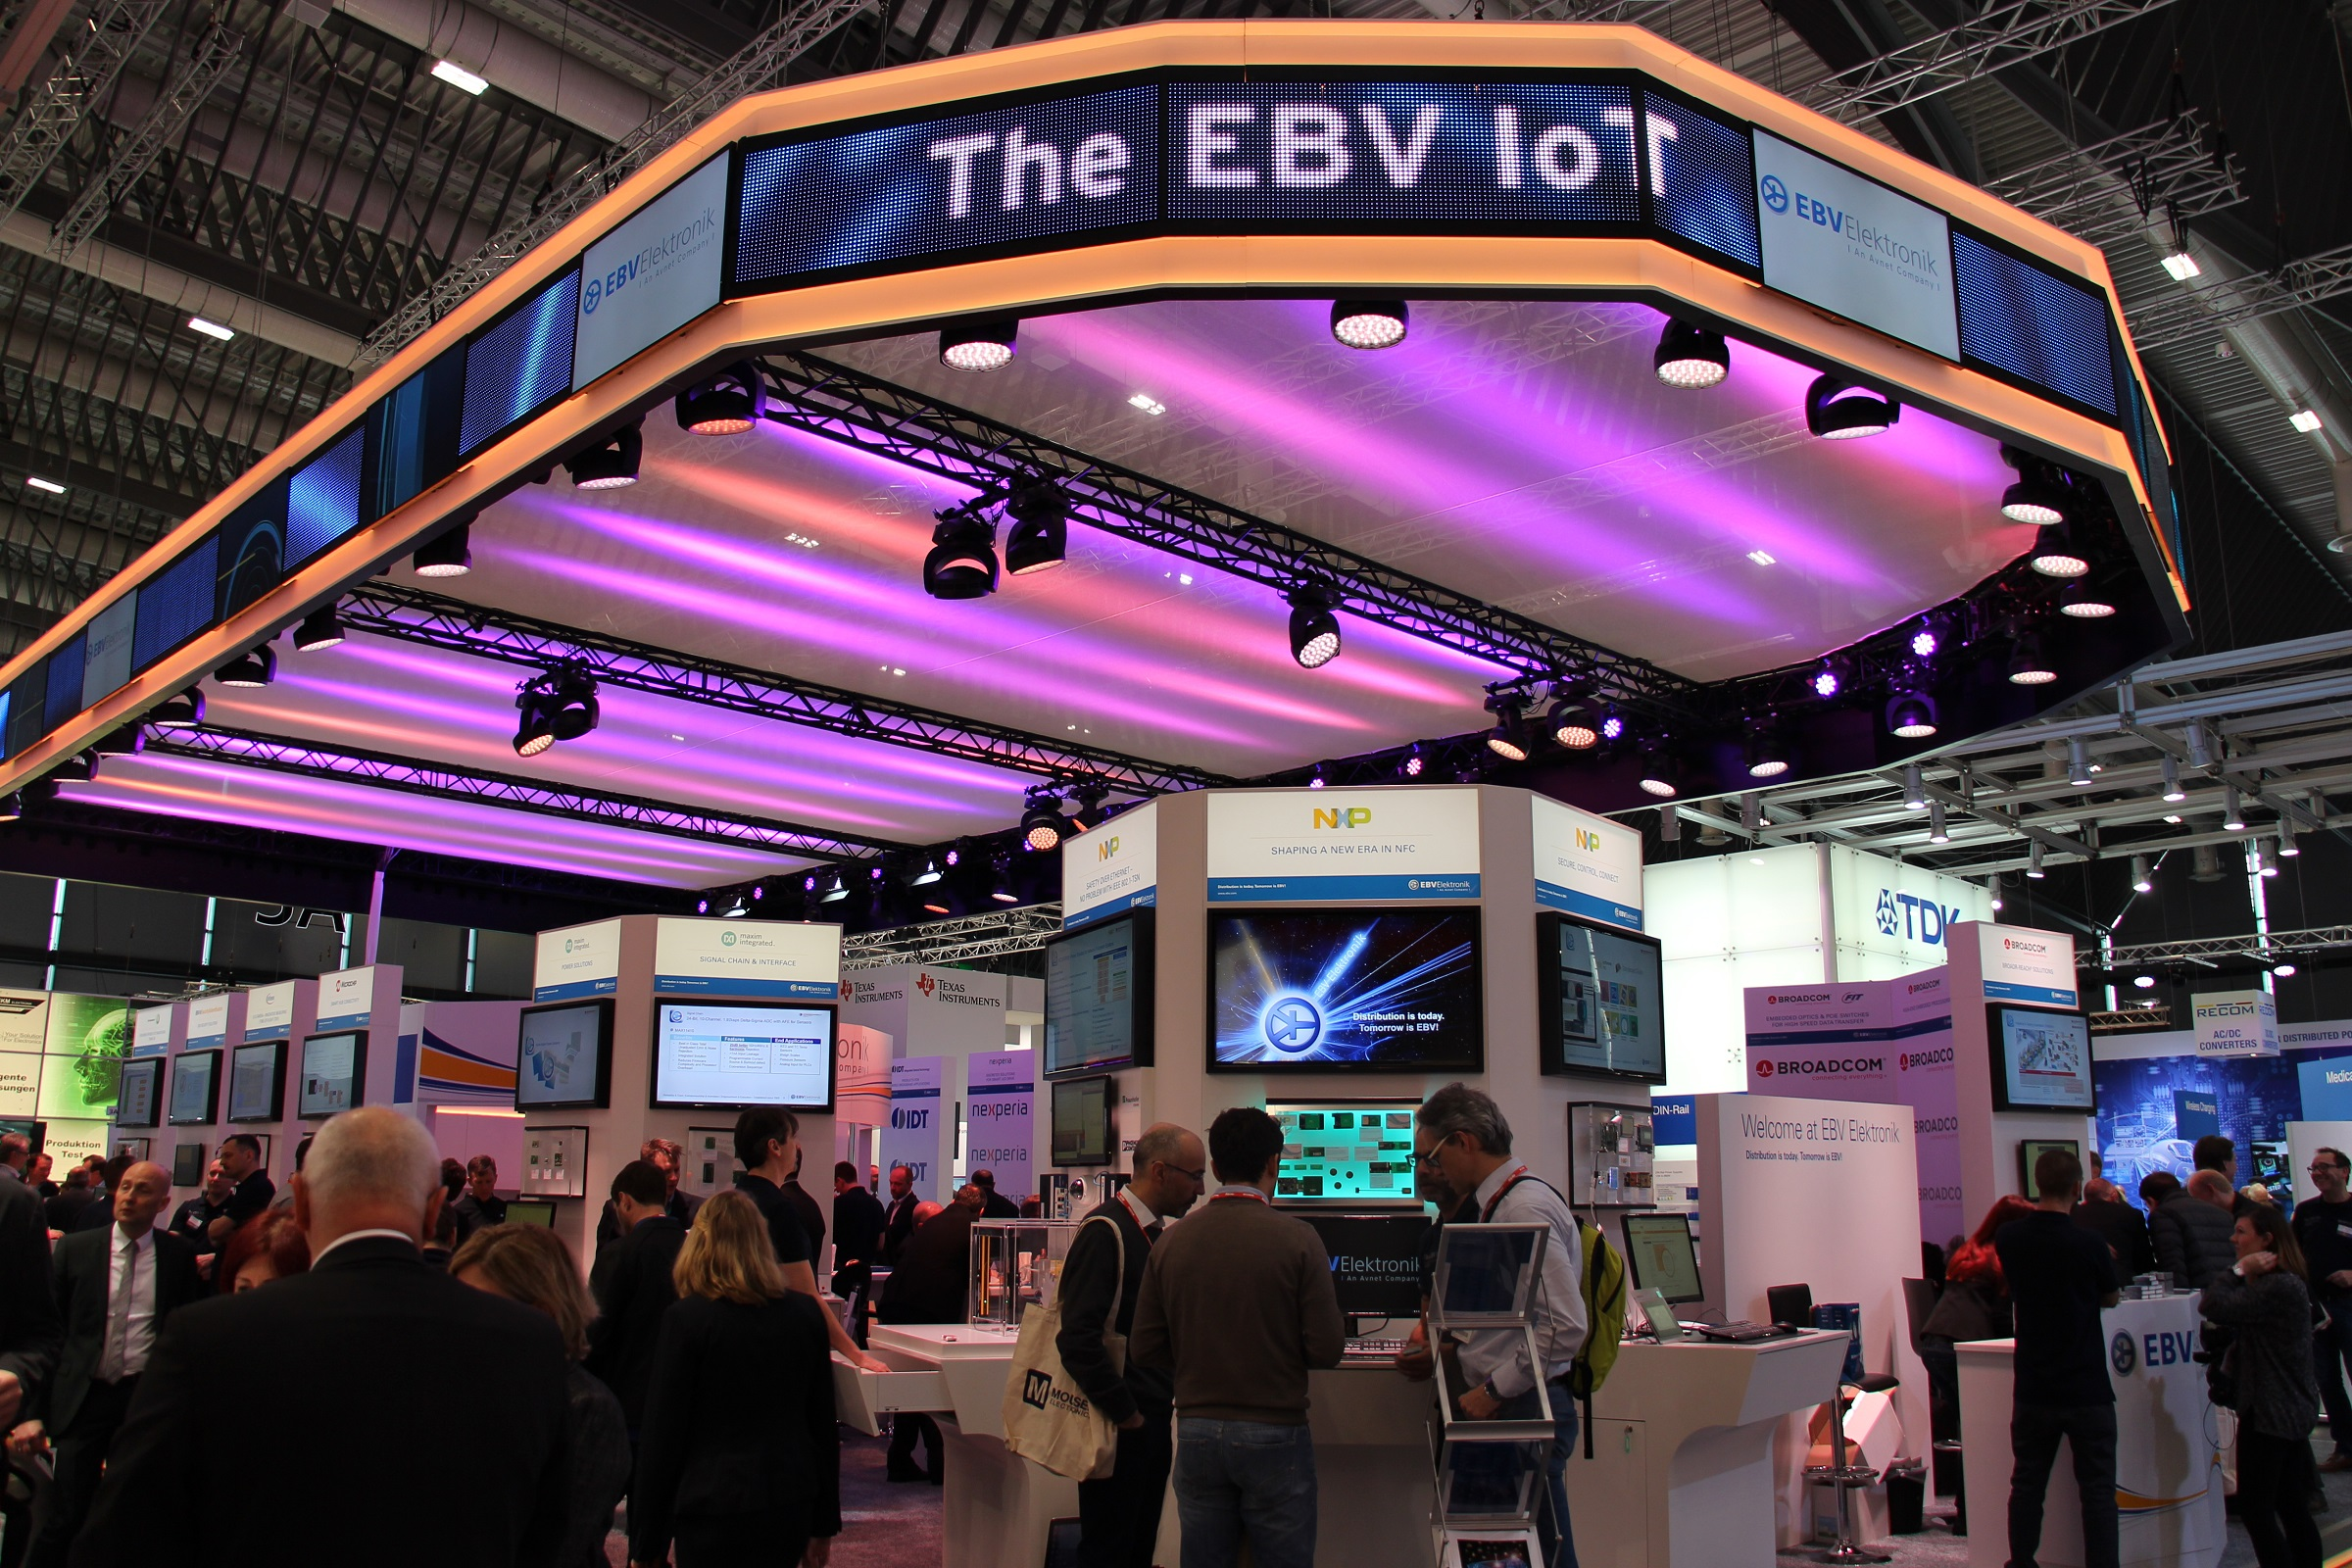 Embedded World 2017 EBV booth